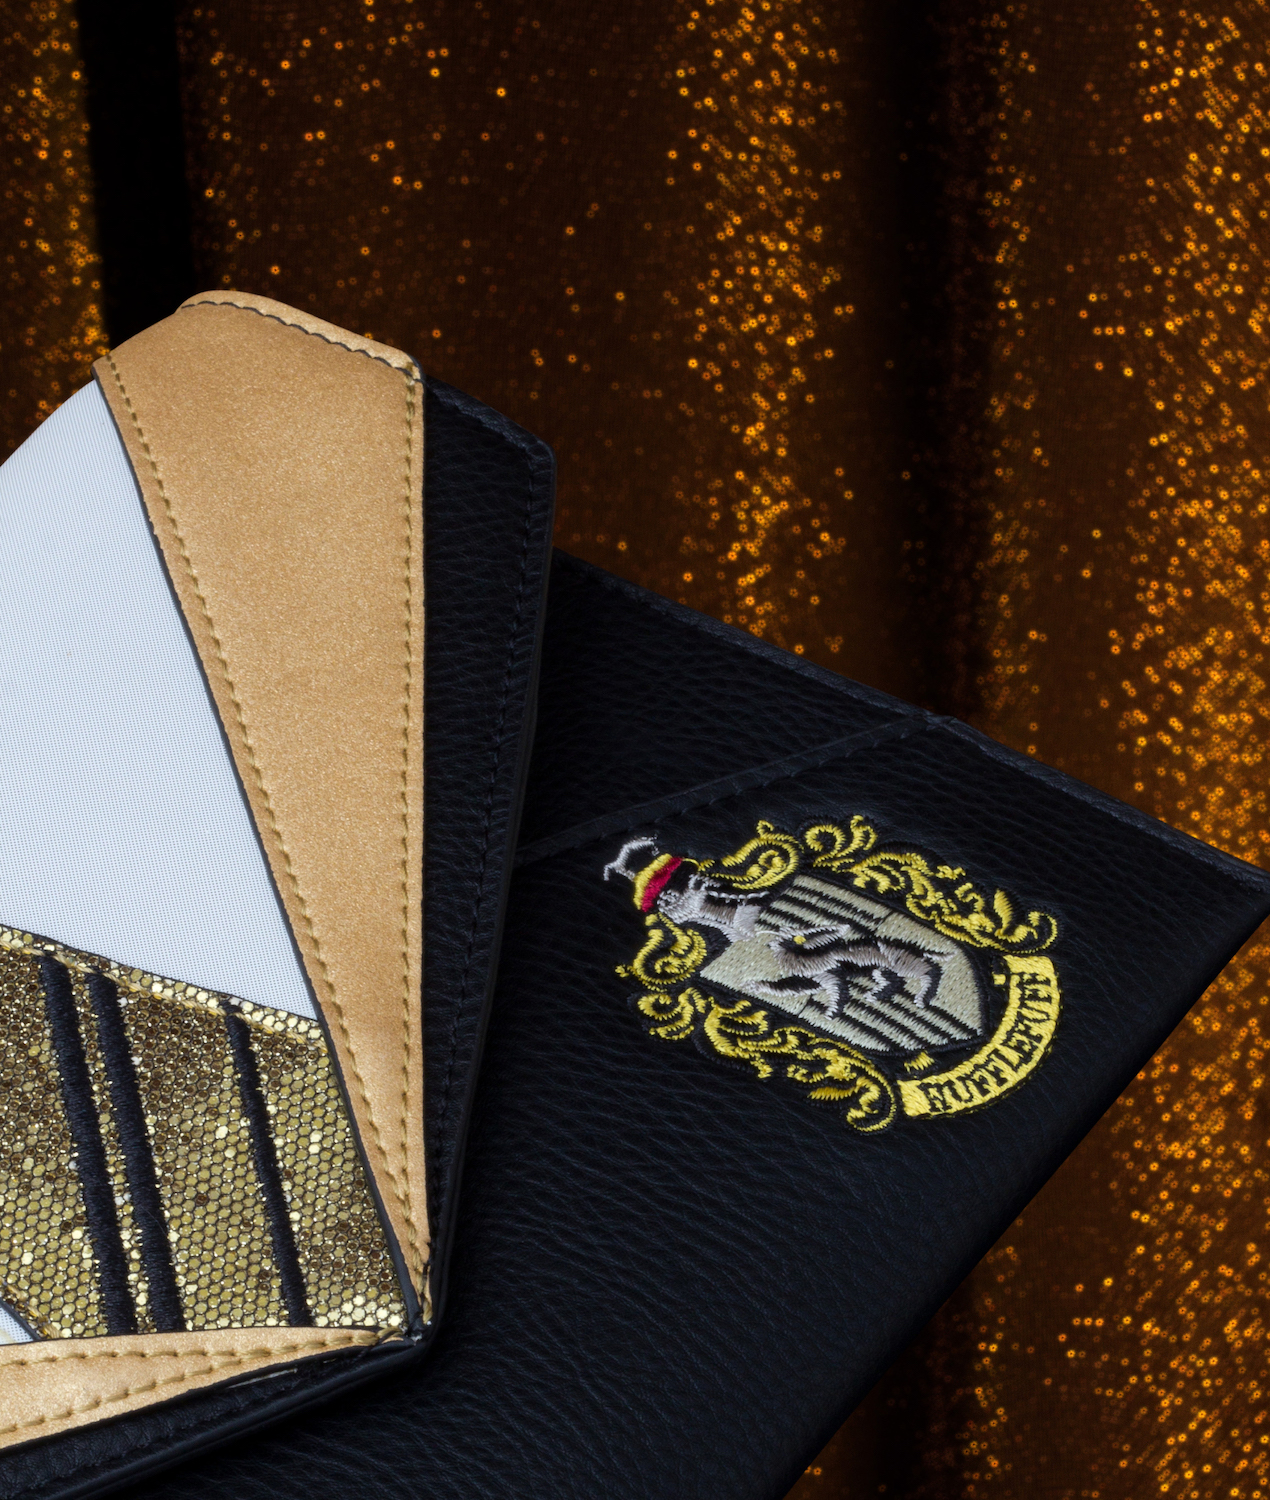 The Danielle Nicole Hufflepuff Uniform Clutch is for the patient and dedicated.